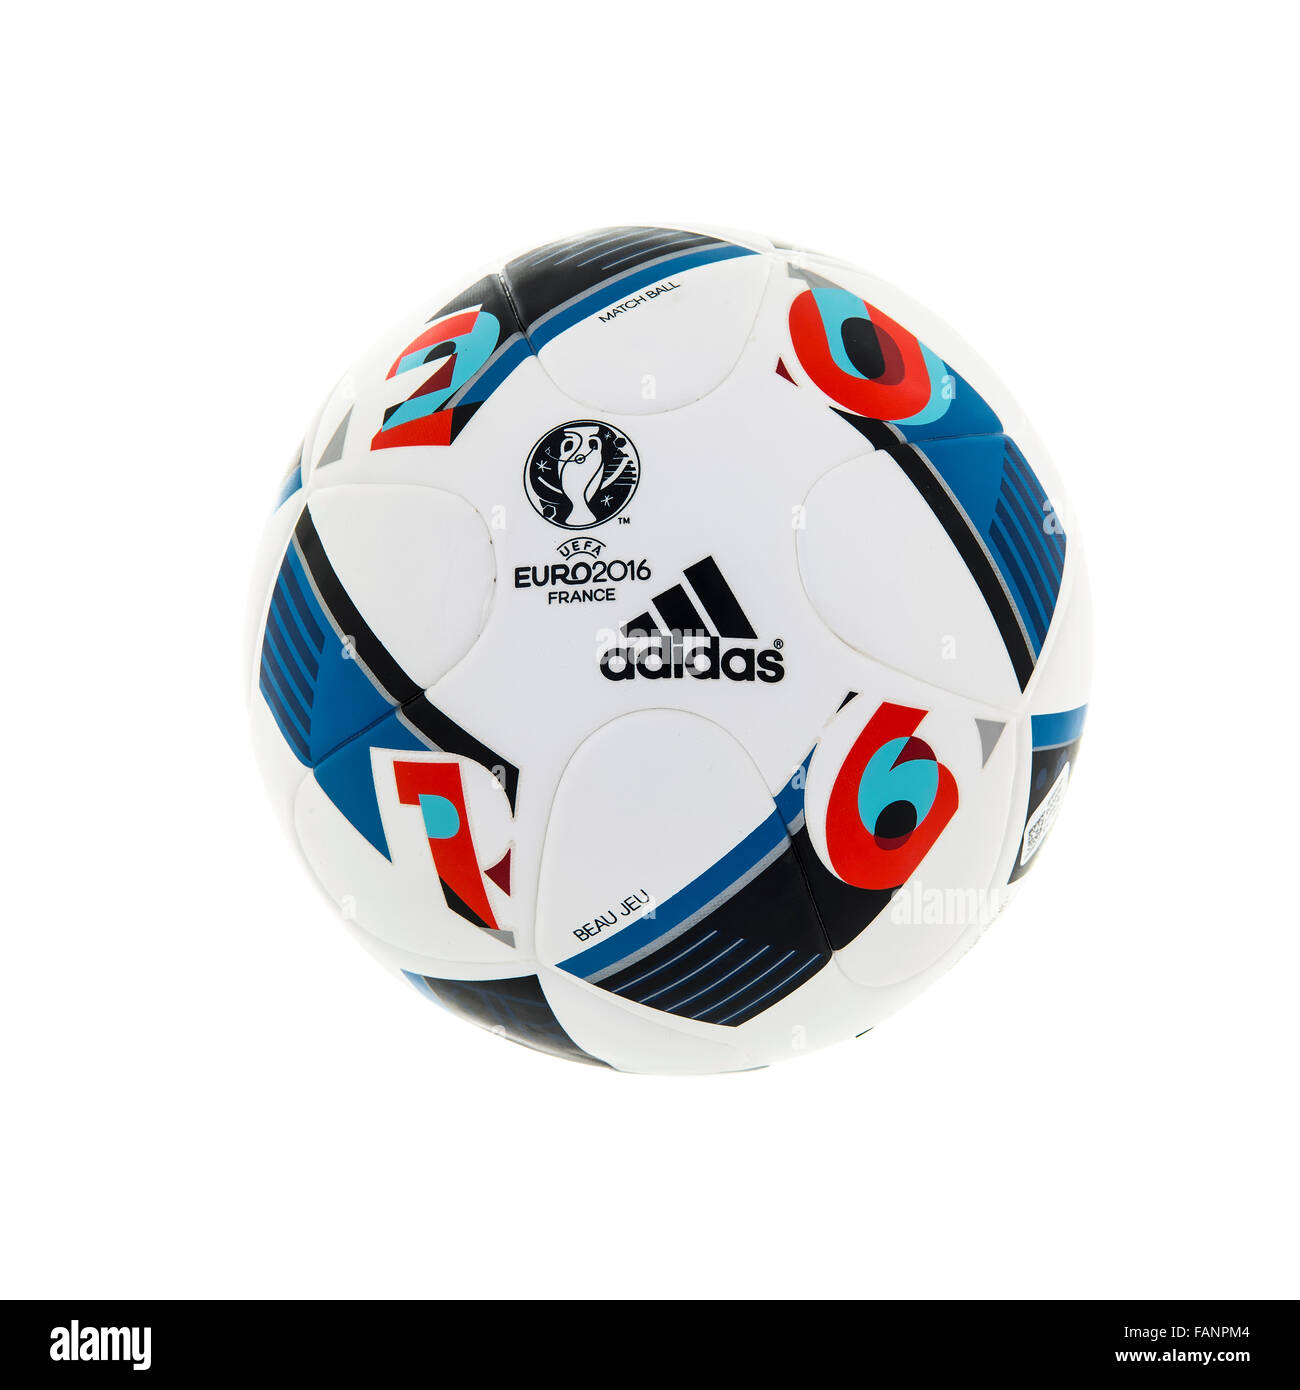 Adidas BEAU JEU official Match Ball for the UEFA EURO 2016 football tournament in France - Stock Image